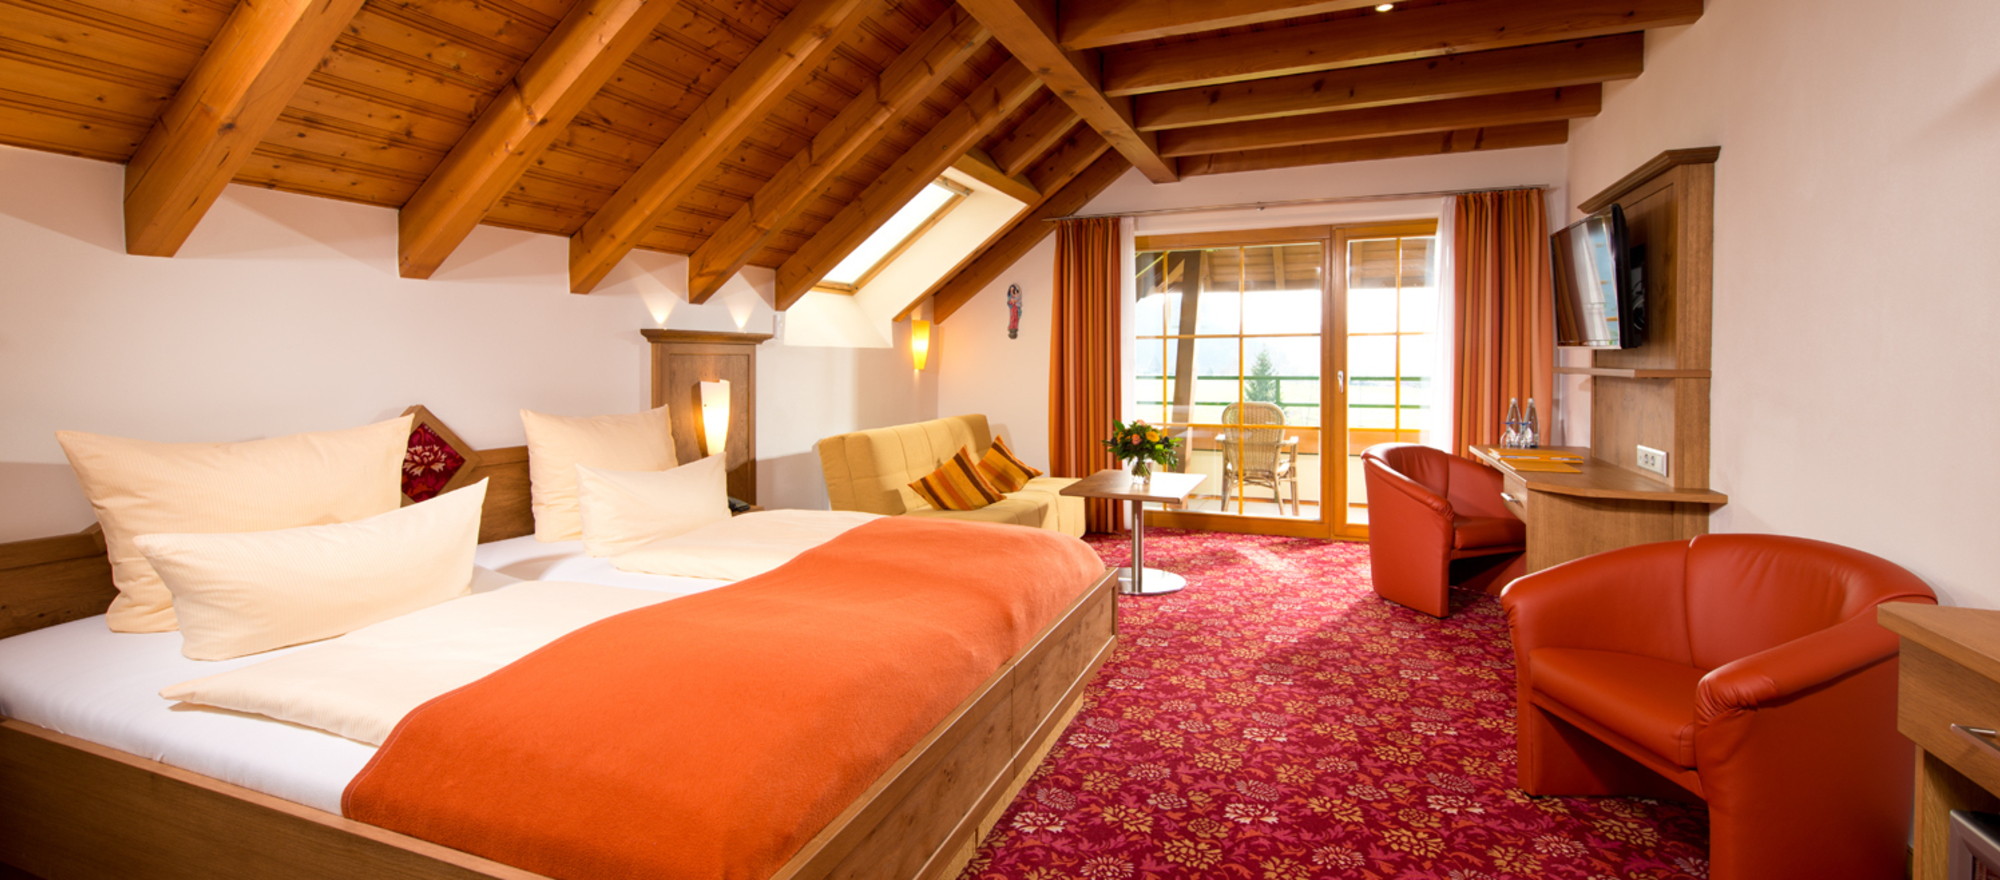 Cosiness in country style, the superior rooms with balcony at the 4-star Ringhotel Schwarzwald-Hotel Silberkoenig in Gutach-Bleibach